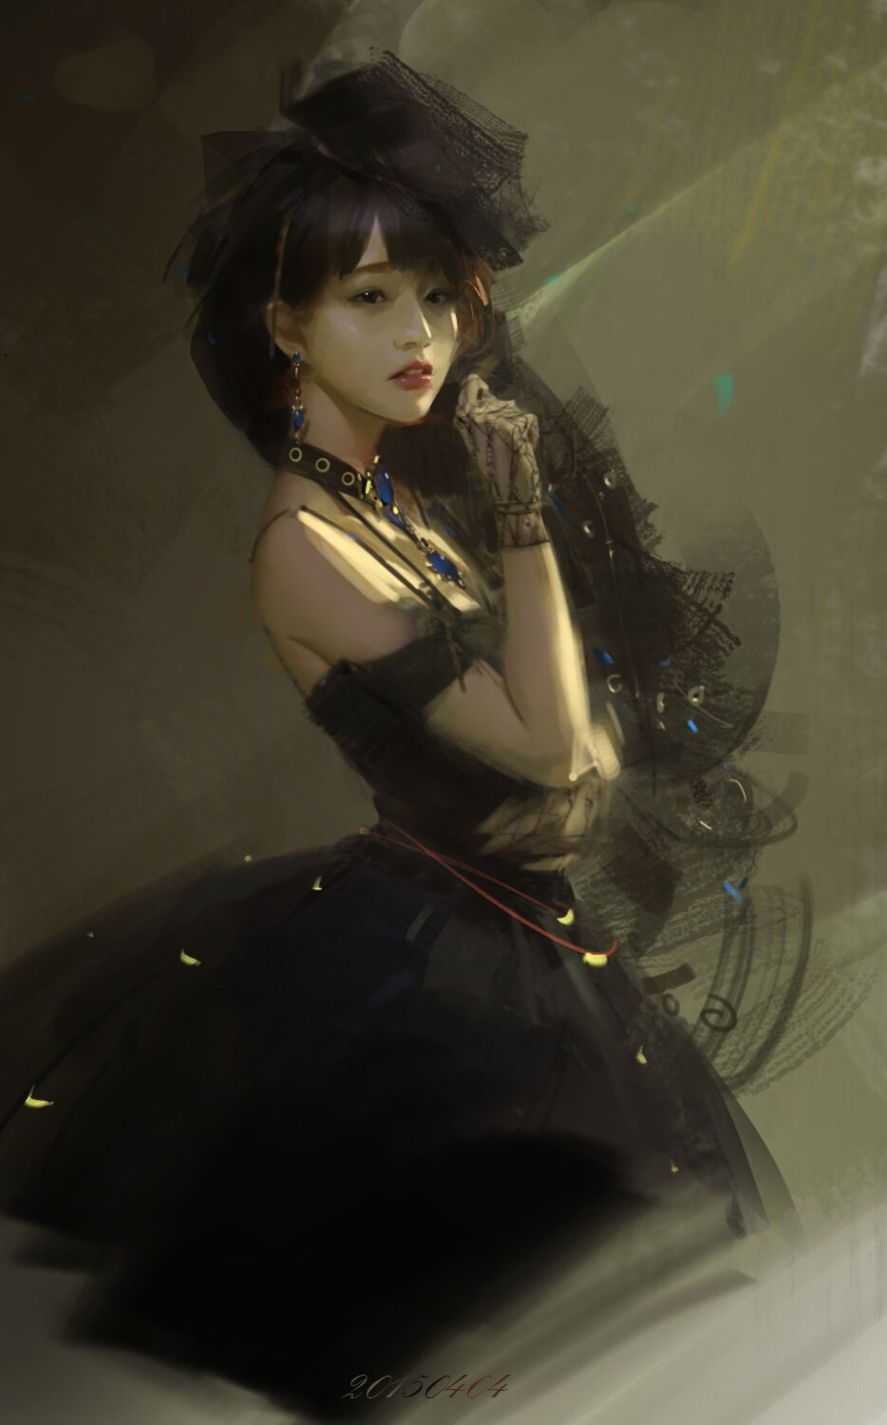 Digital Portrait - Fantasy By `Y 。(Nick Name) From `Chengdu, China